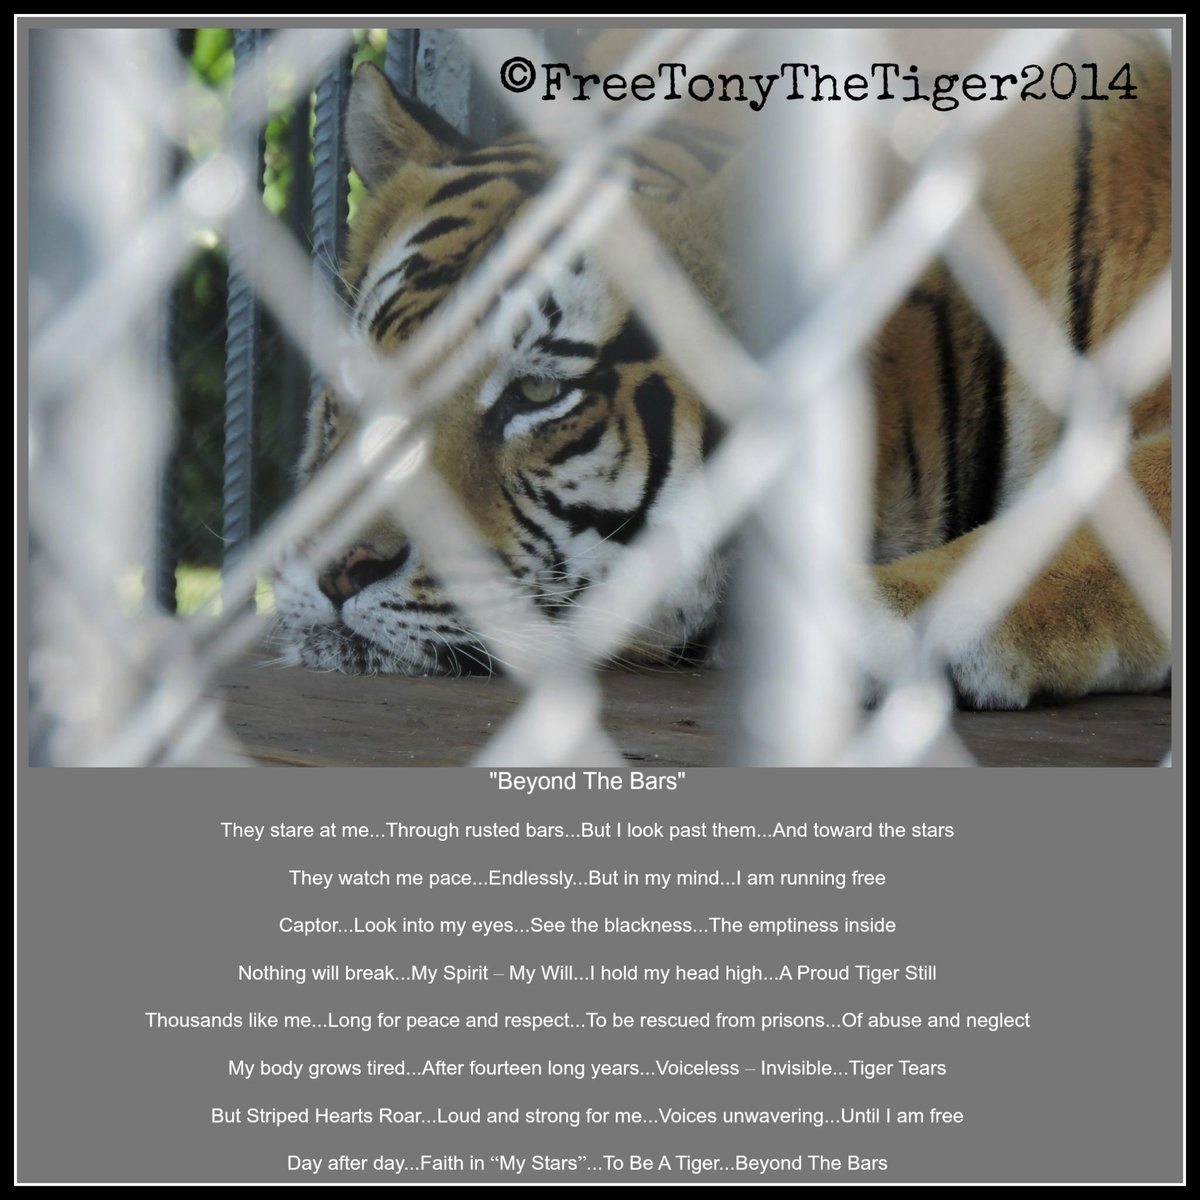 HEY!! Tiger Truck Stop Man!! You Don't Own Me ... & #Tigers DON'T Belong At Truck Stops!! #FreeTonyTiger http://t.co/v3hx3mO6E0